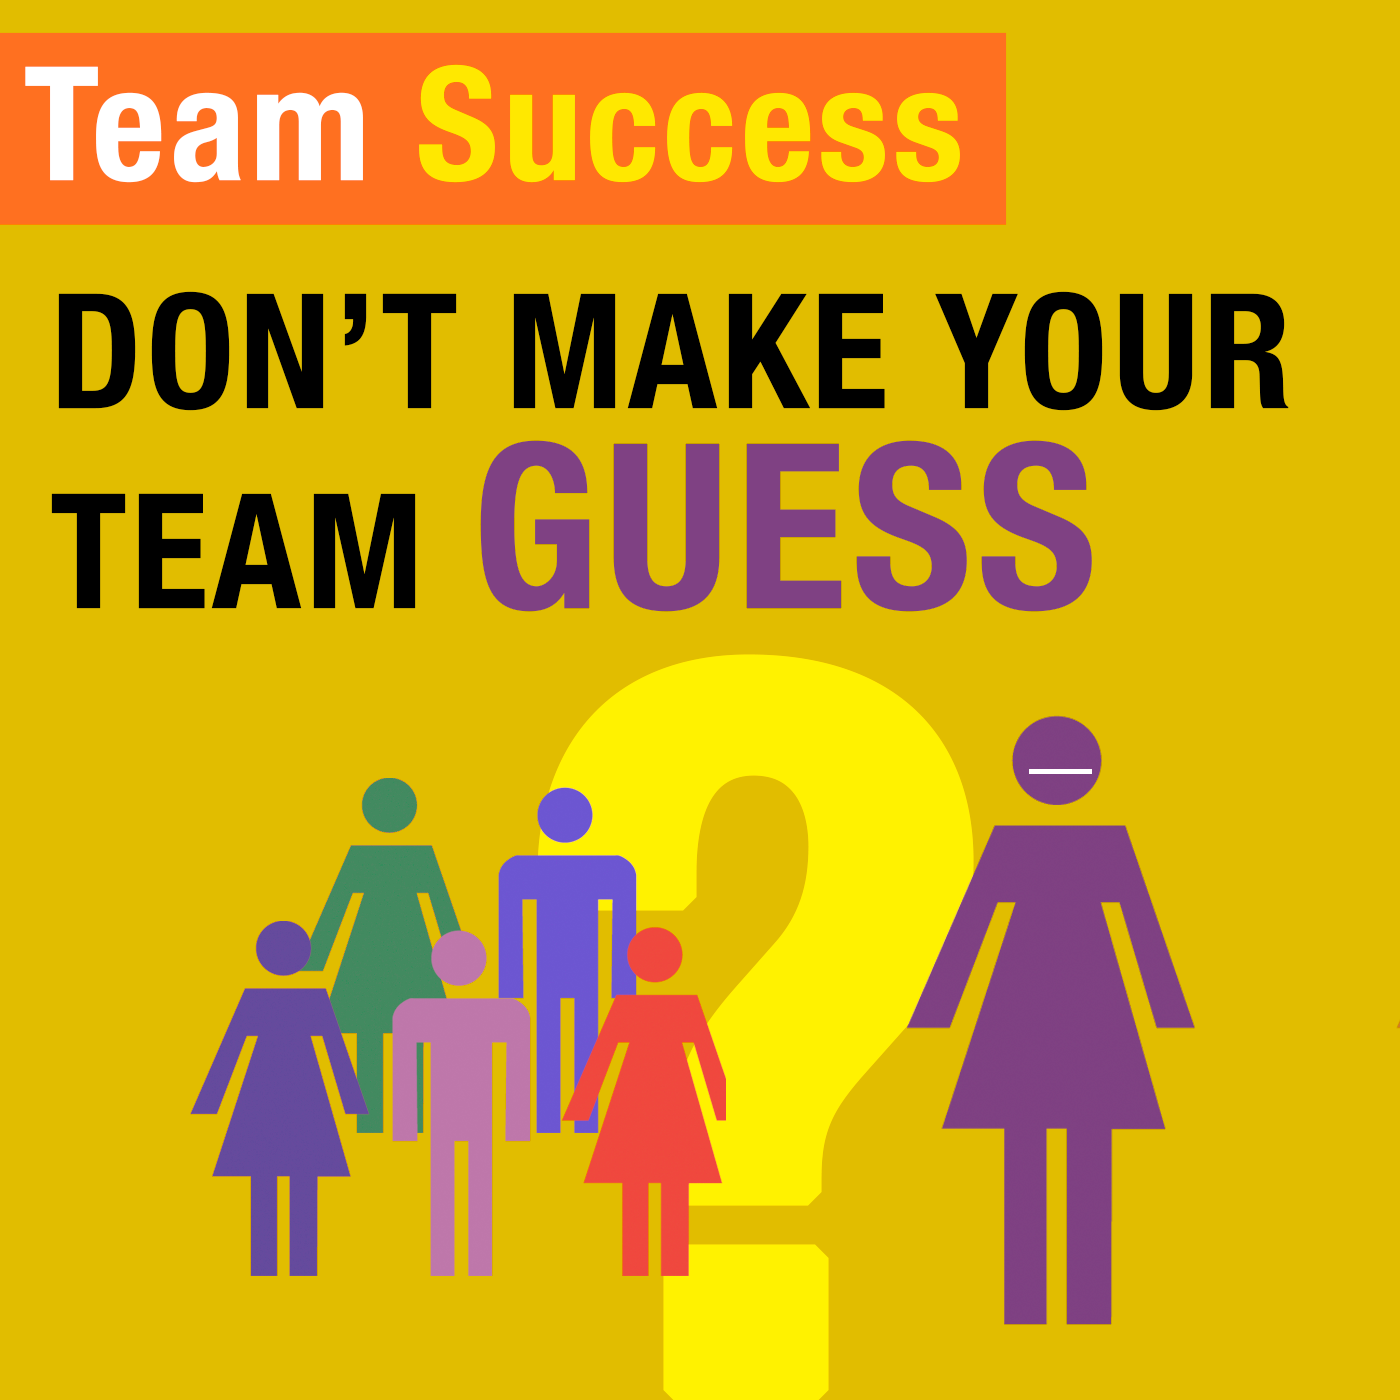 Don't Make Your Team Guess